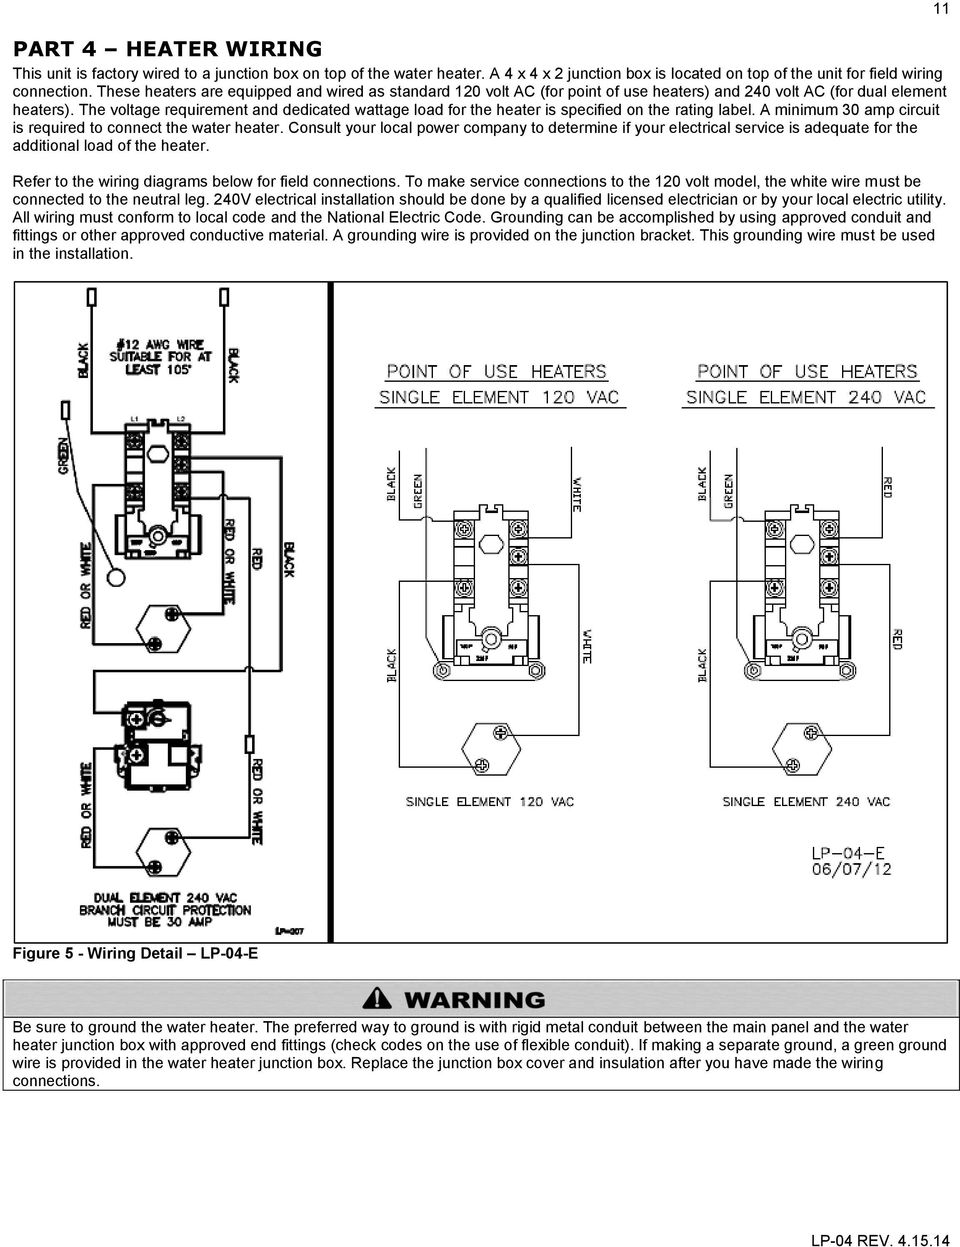 Wiring Diagram For Dual Element Water Heater from docplayer.net